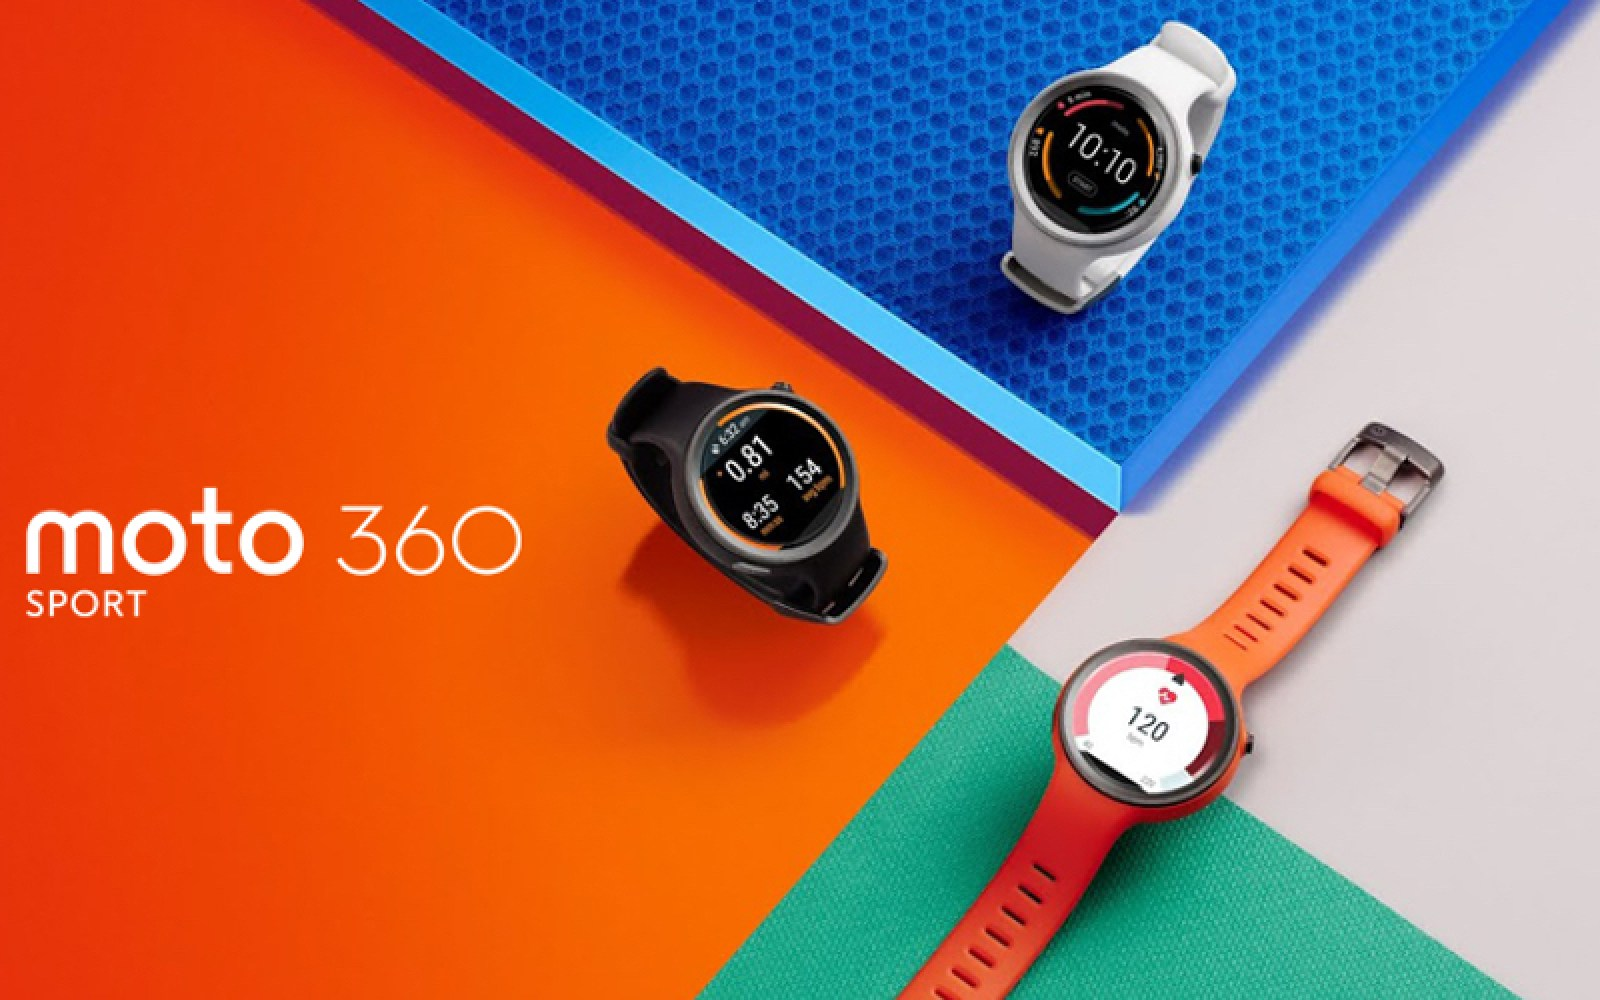 Fitness-focused Moto 360 Sport launching later this month ...